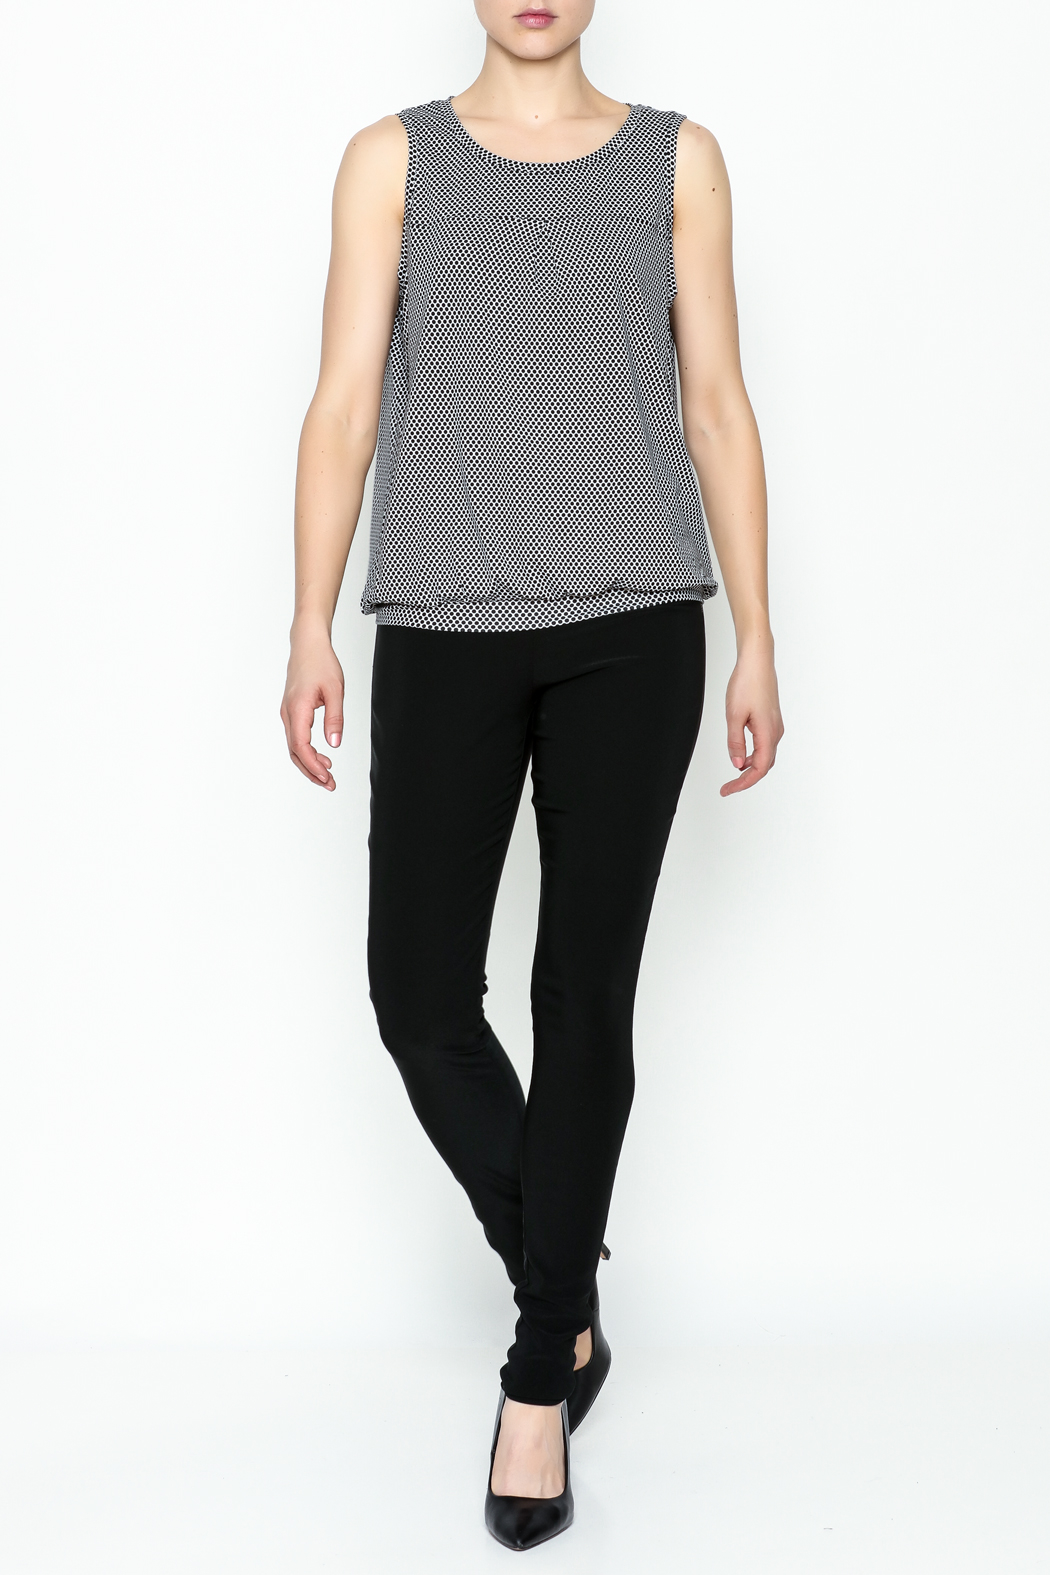 Yest Sleeveless Banded Top - Side Cropped Image